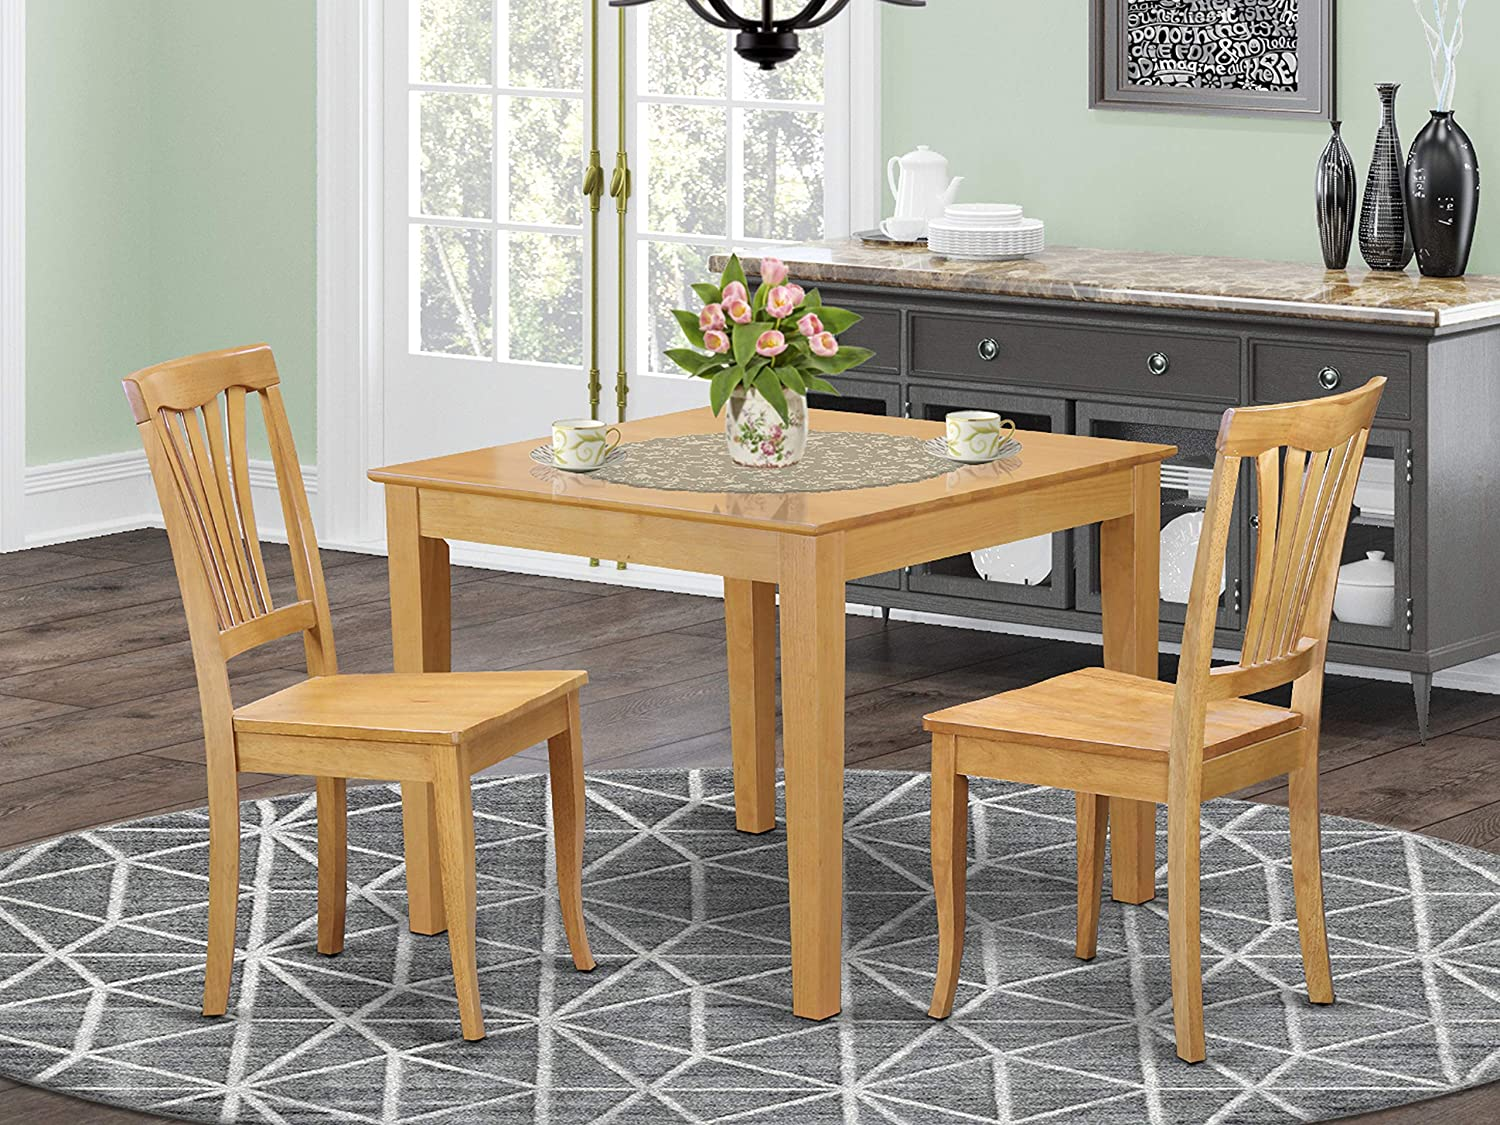 Amazon Com 3 Pc Small Kitchen Table Set Square Table And 2 Dining Chairs Furniture Decor